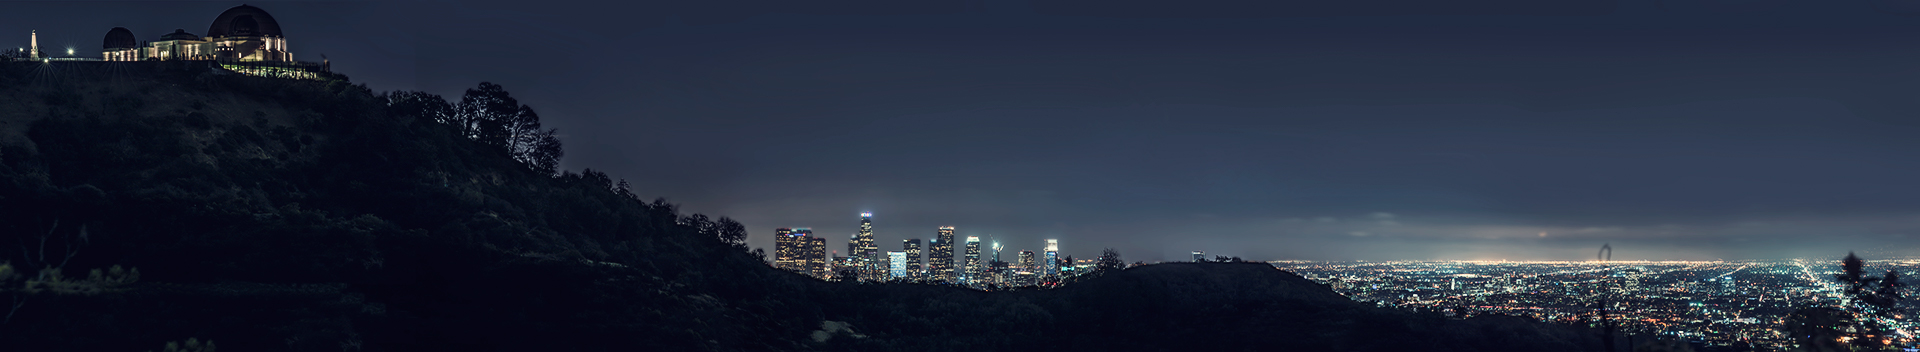 Griffith_Park_to_DTLA_to_Hollywood_Panorama